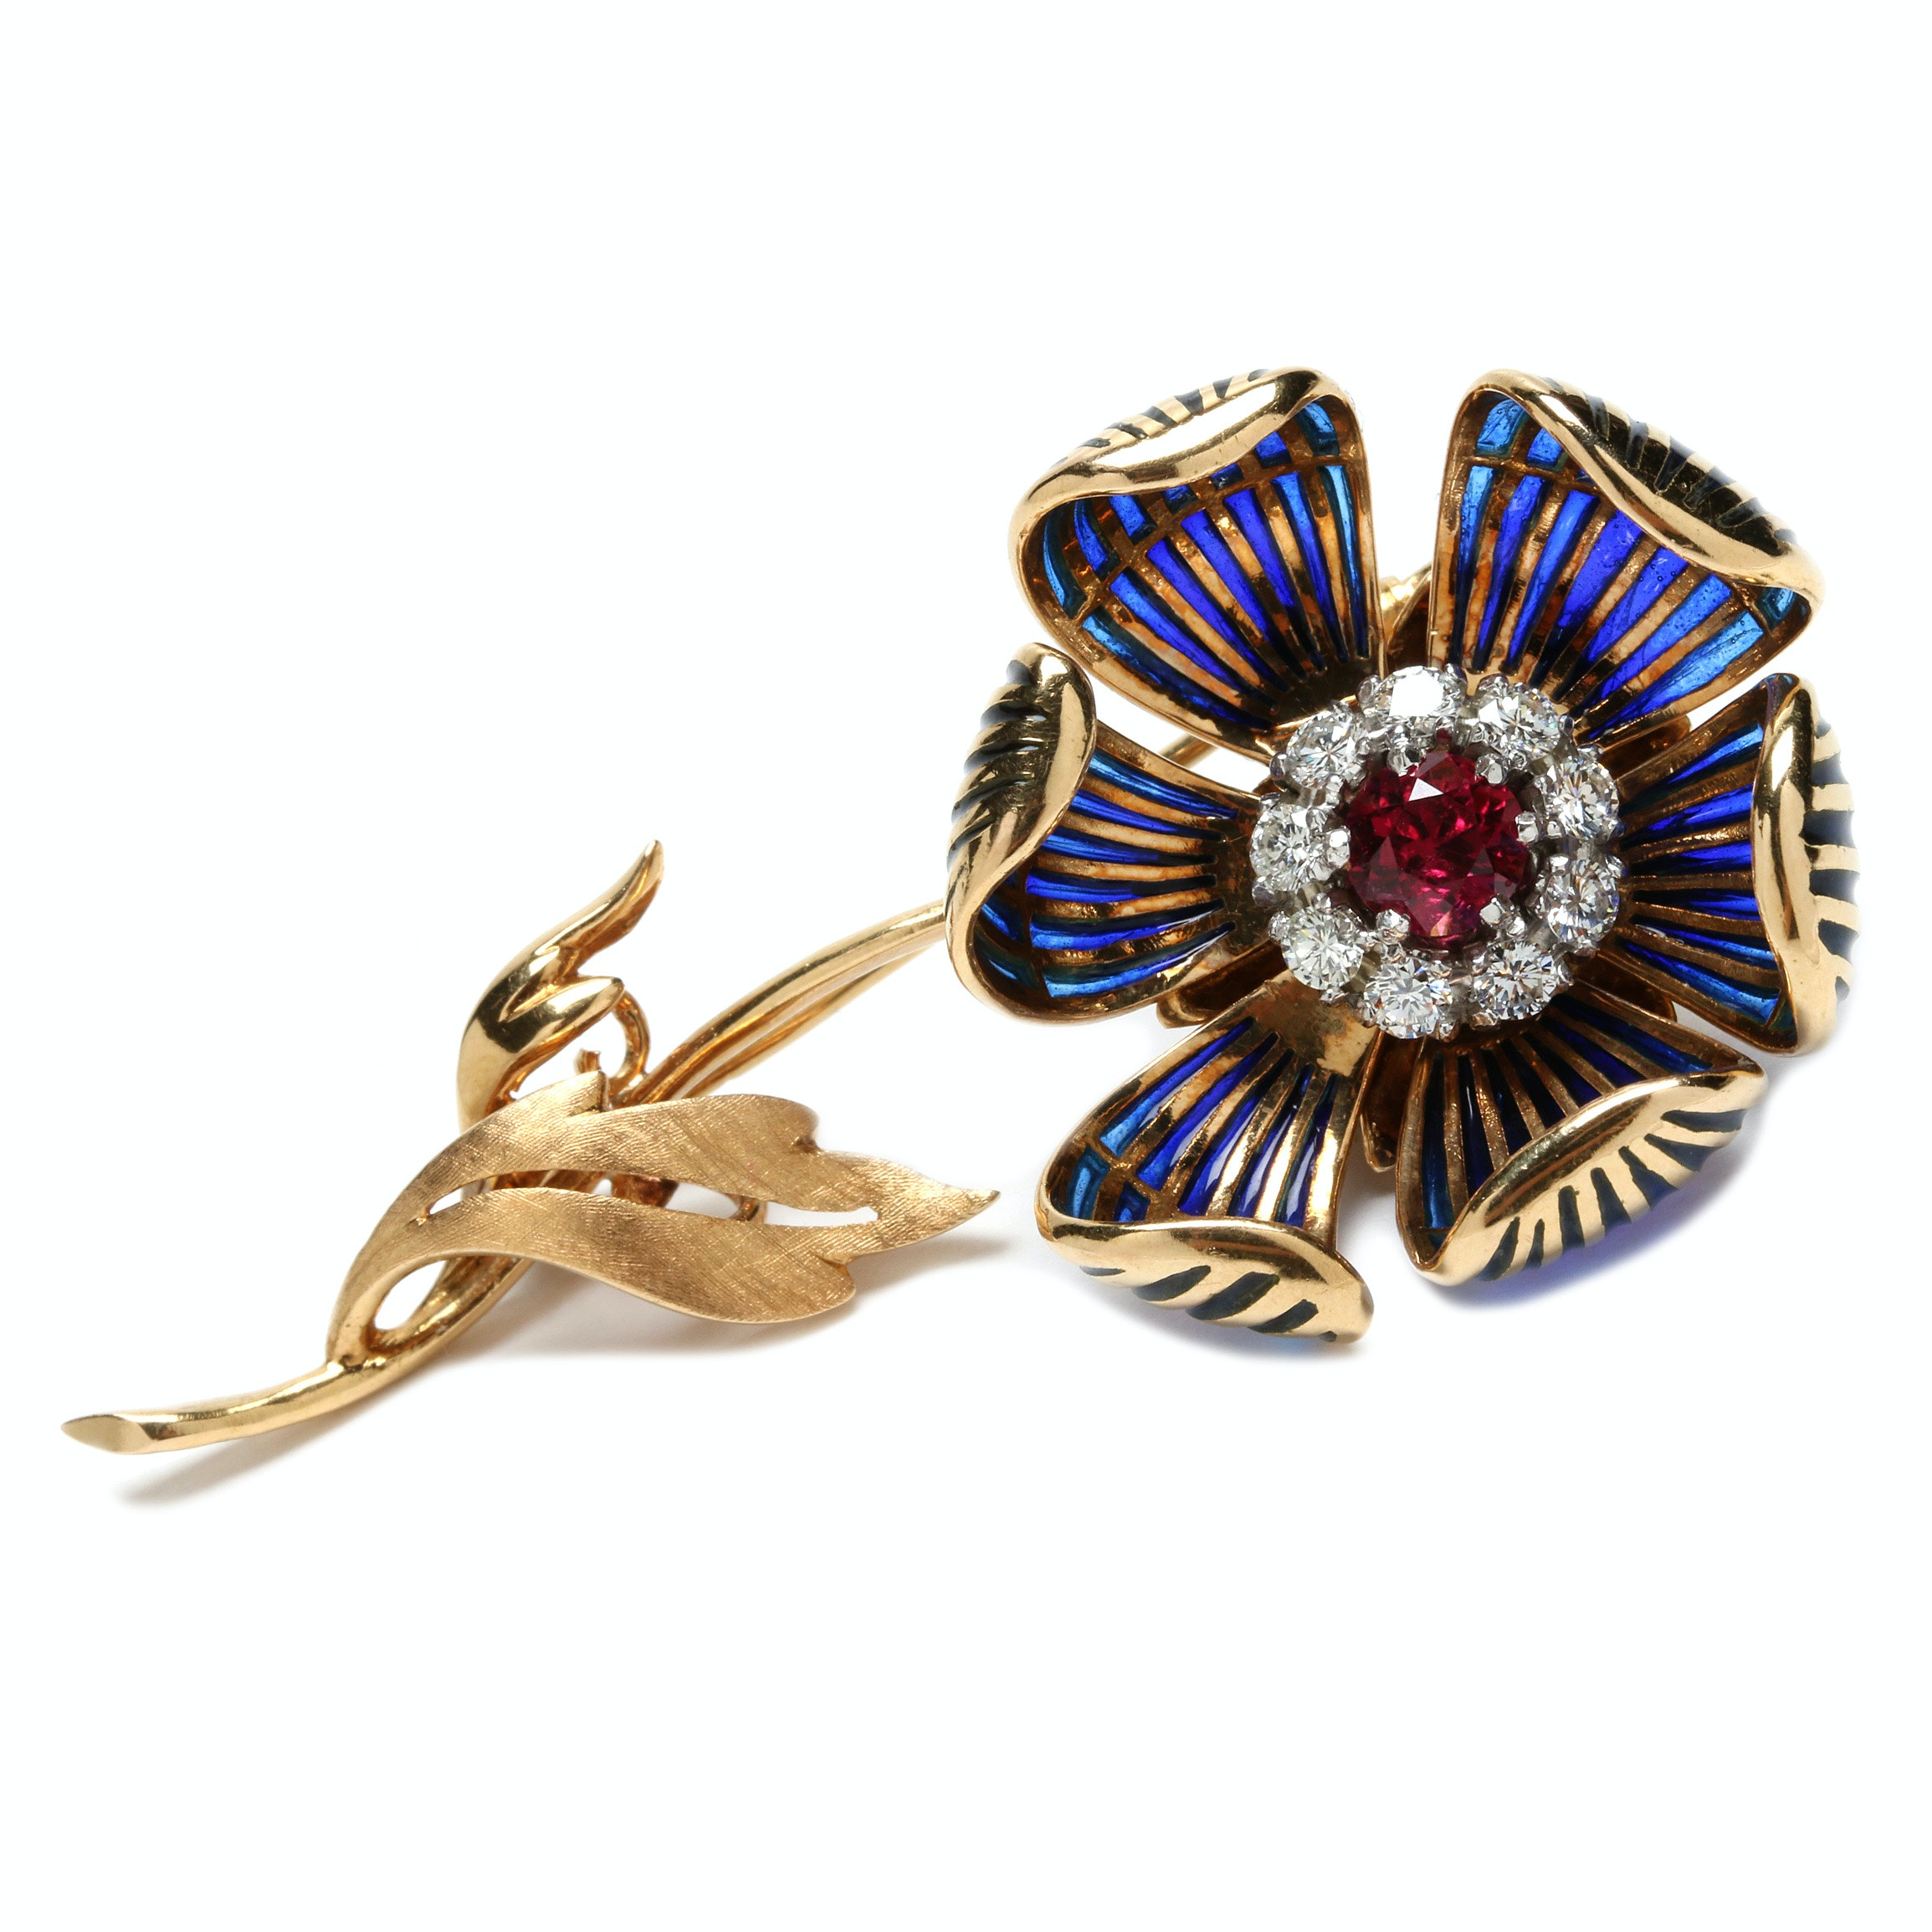 18K Yellow Gold, Ruby, Diamond and Plique-à-Jour Articulated Flower Brooch